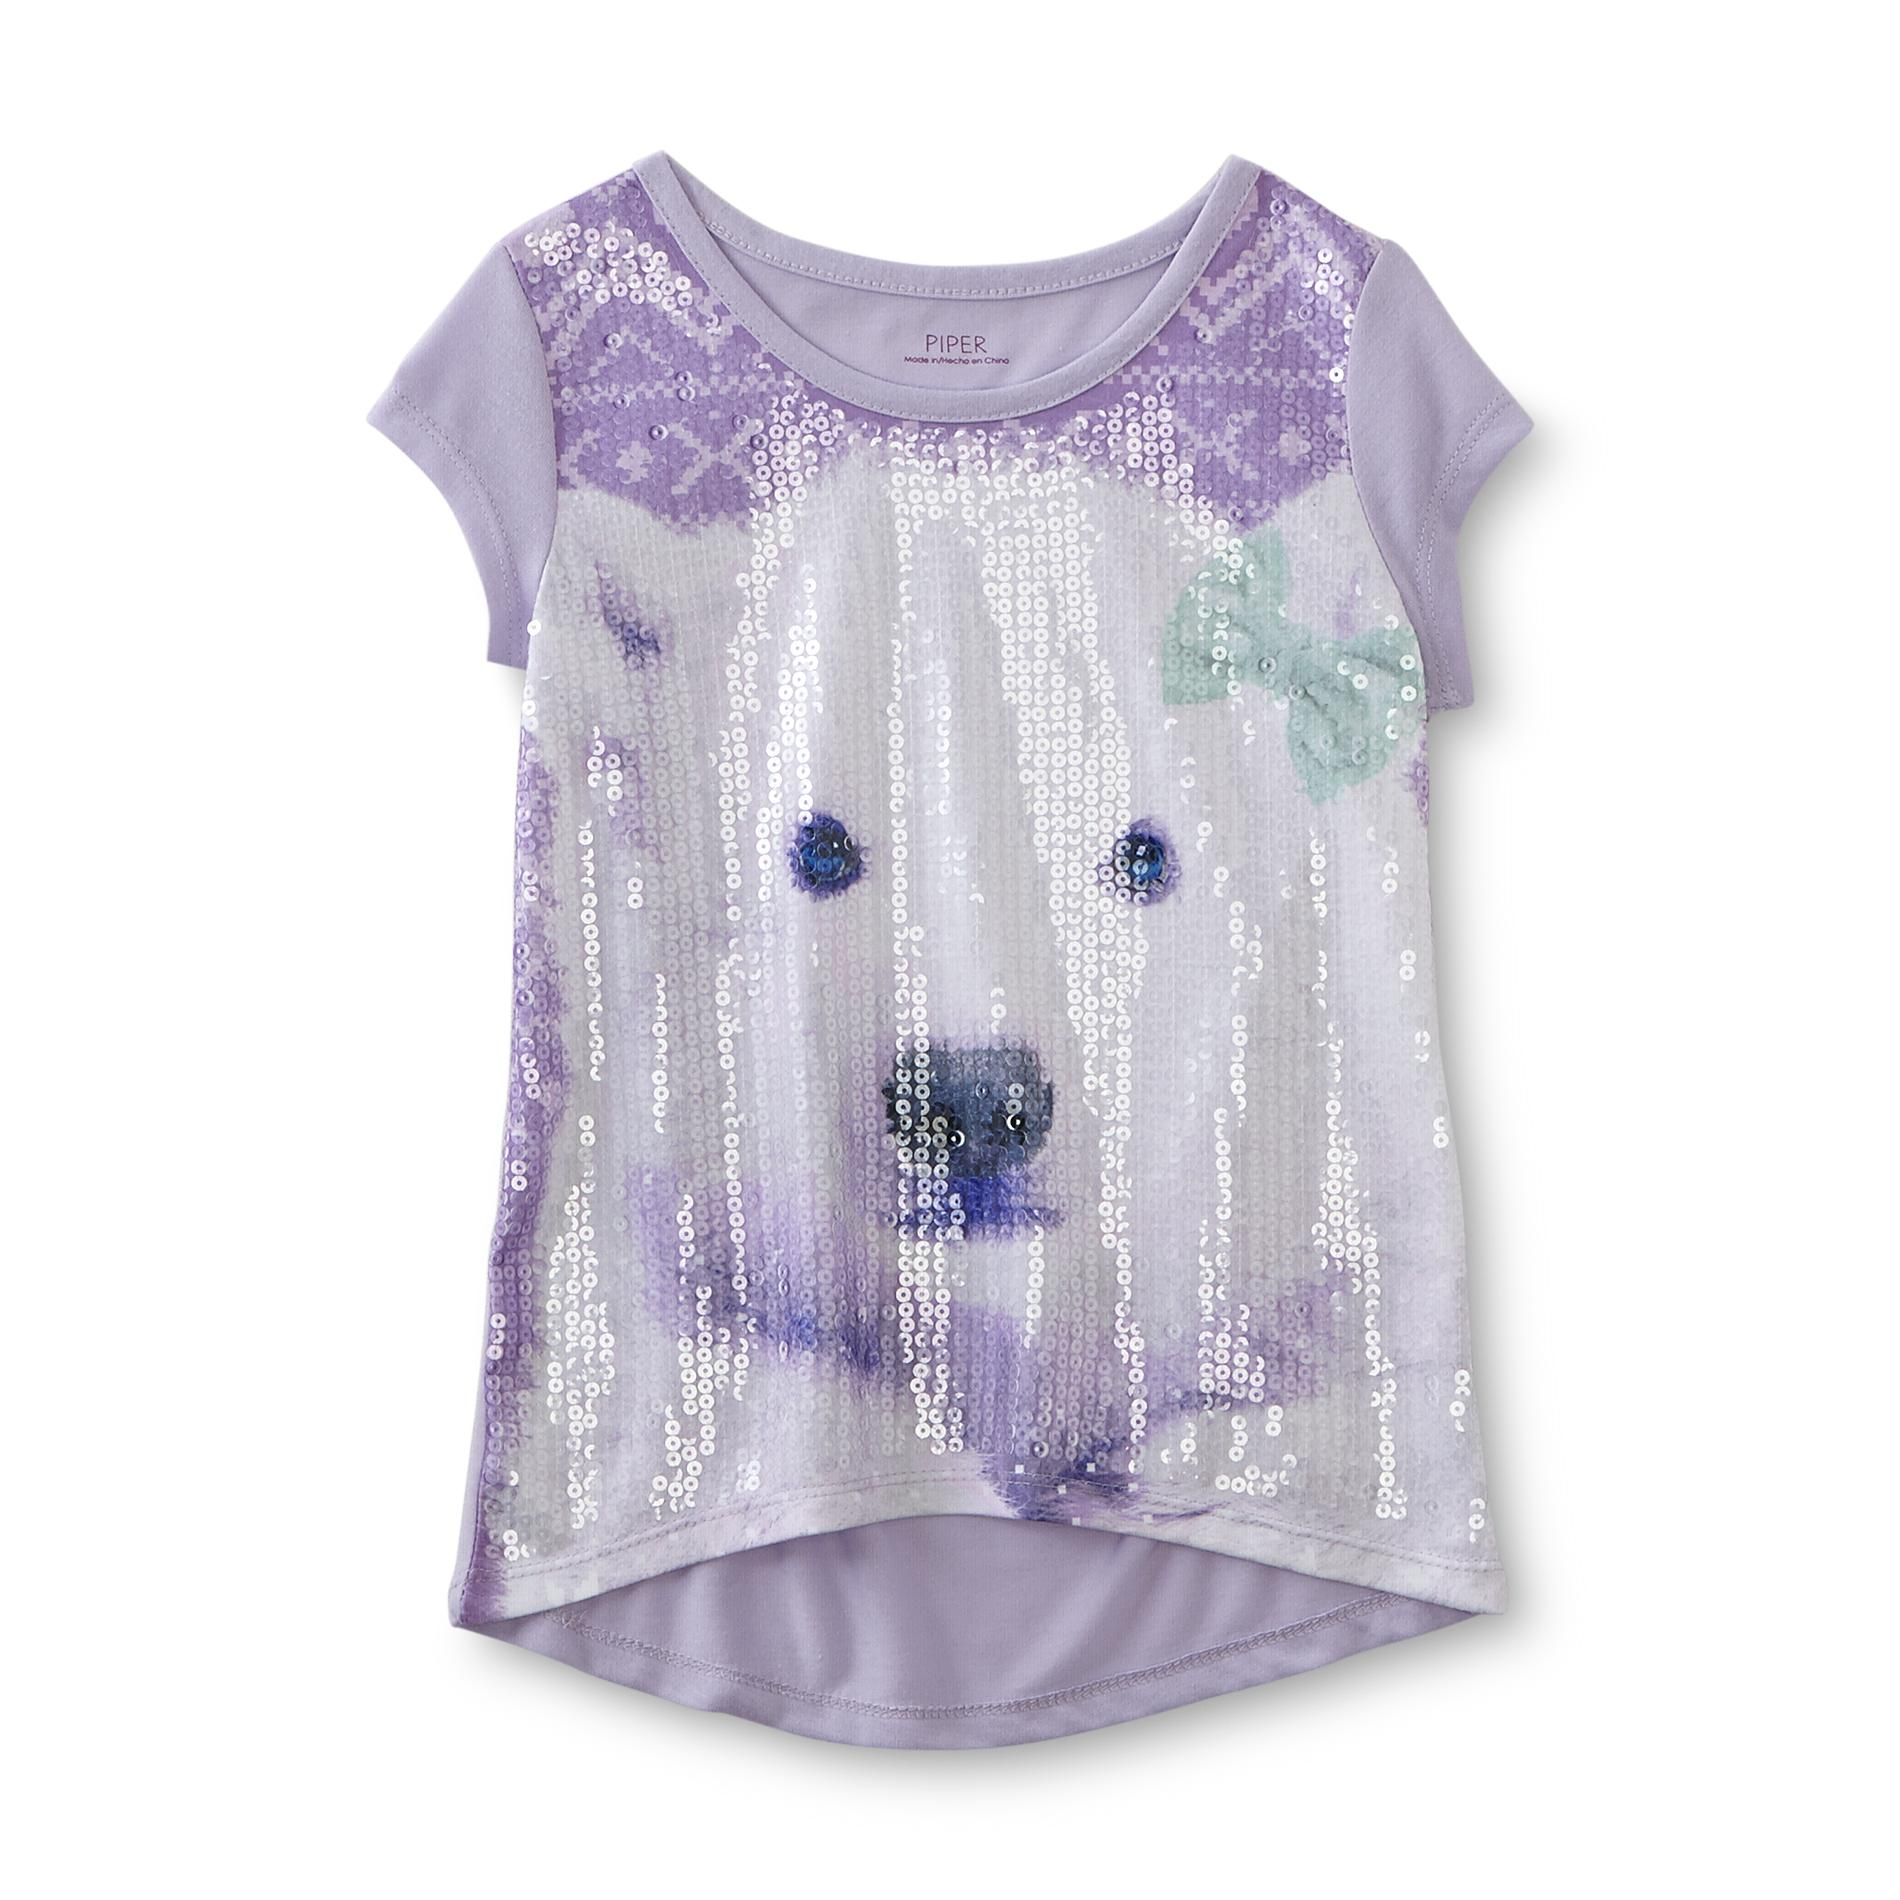 Piper Girl's Sequined Graphic T-Shirt - Polar Bear